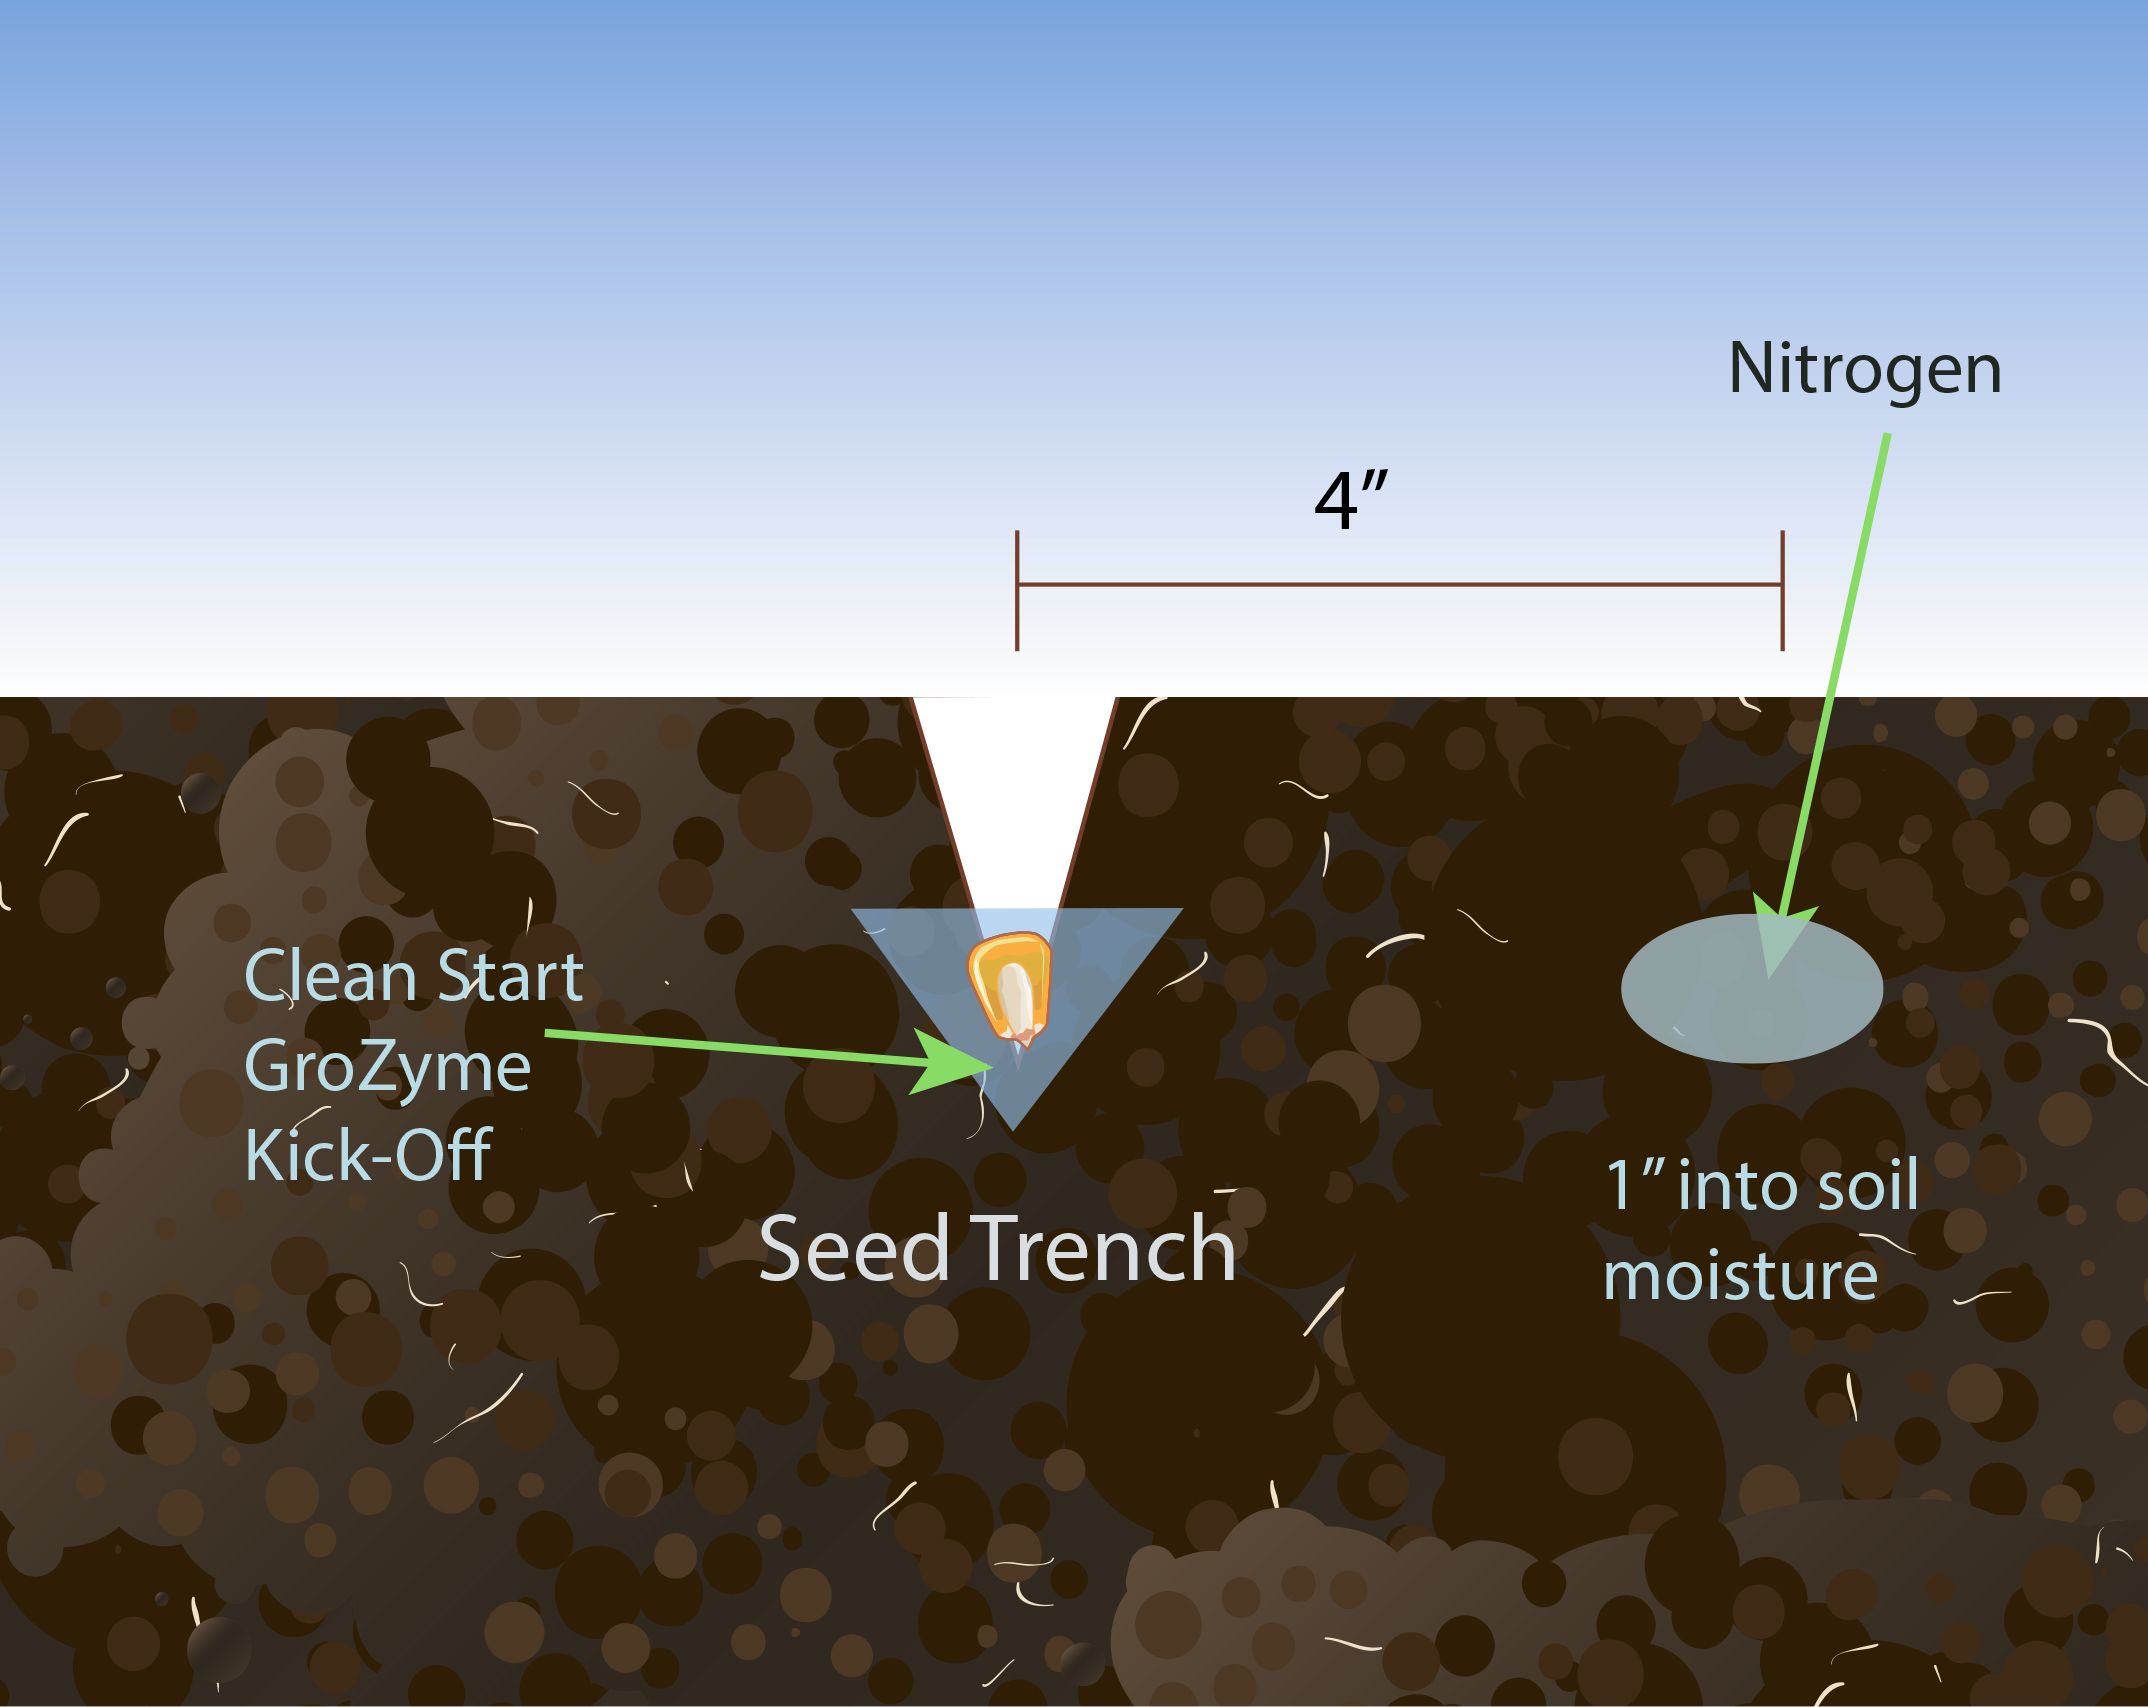 Diagram of a Seed Trench